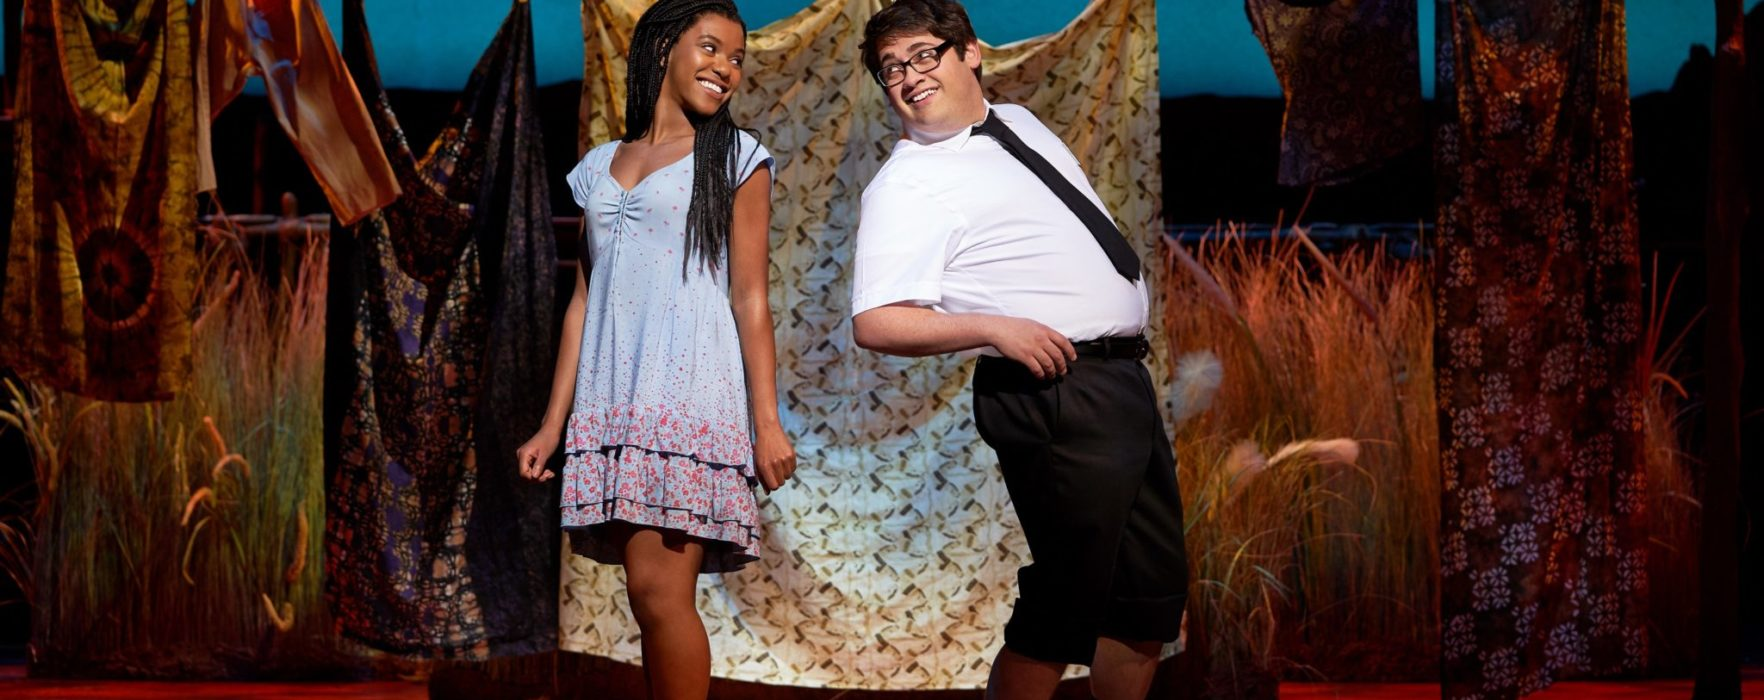 REVIEWED: Book of Mormon at the Palace Theatre